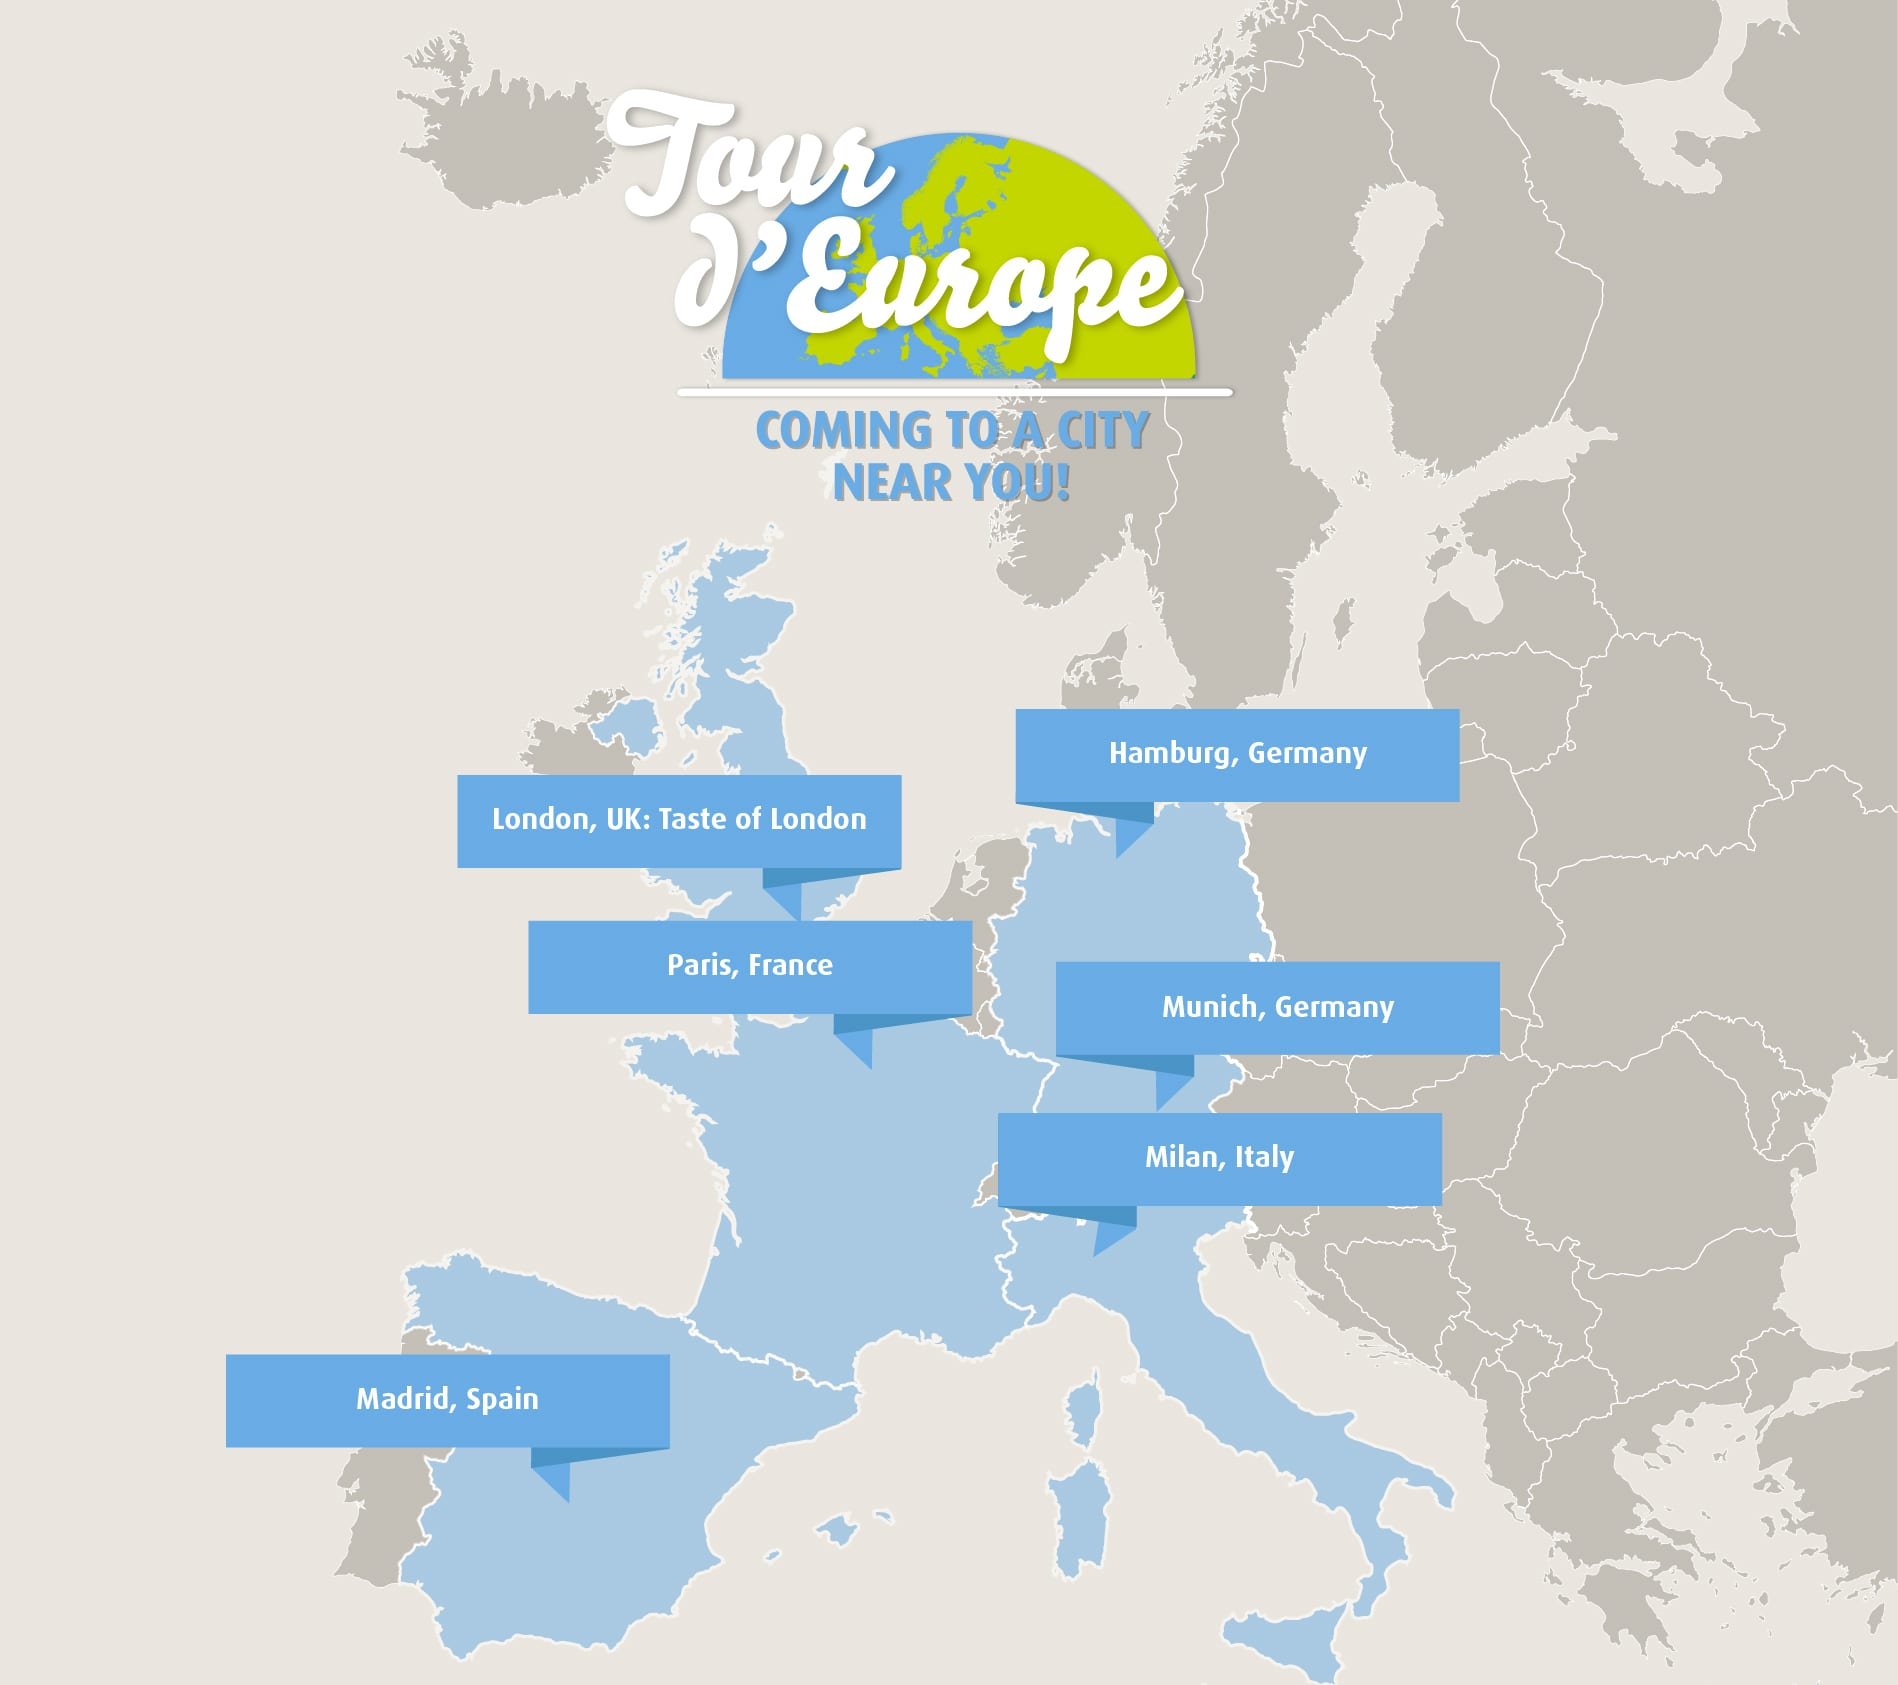 Visual Site Map: #MapYourTaste On The Tour D'Europe